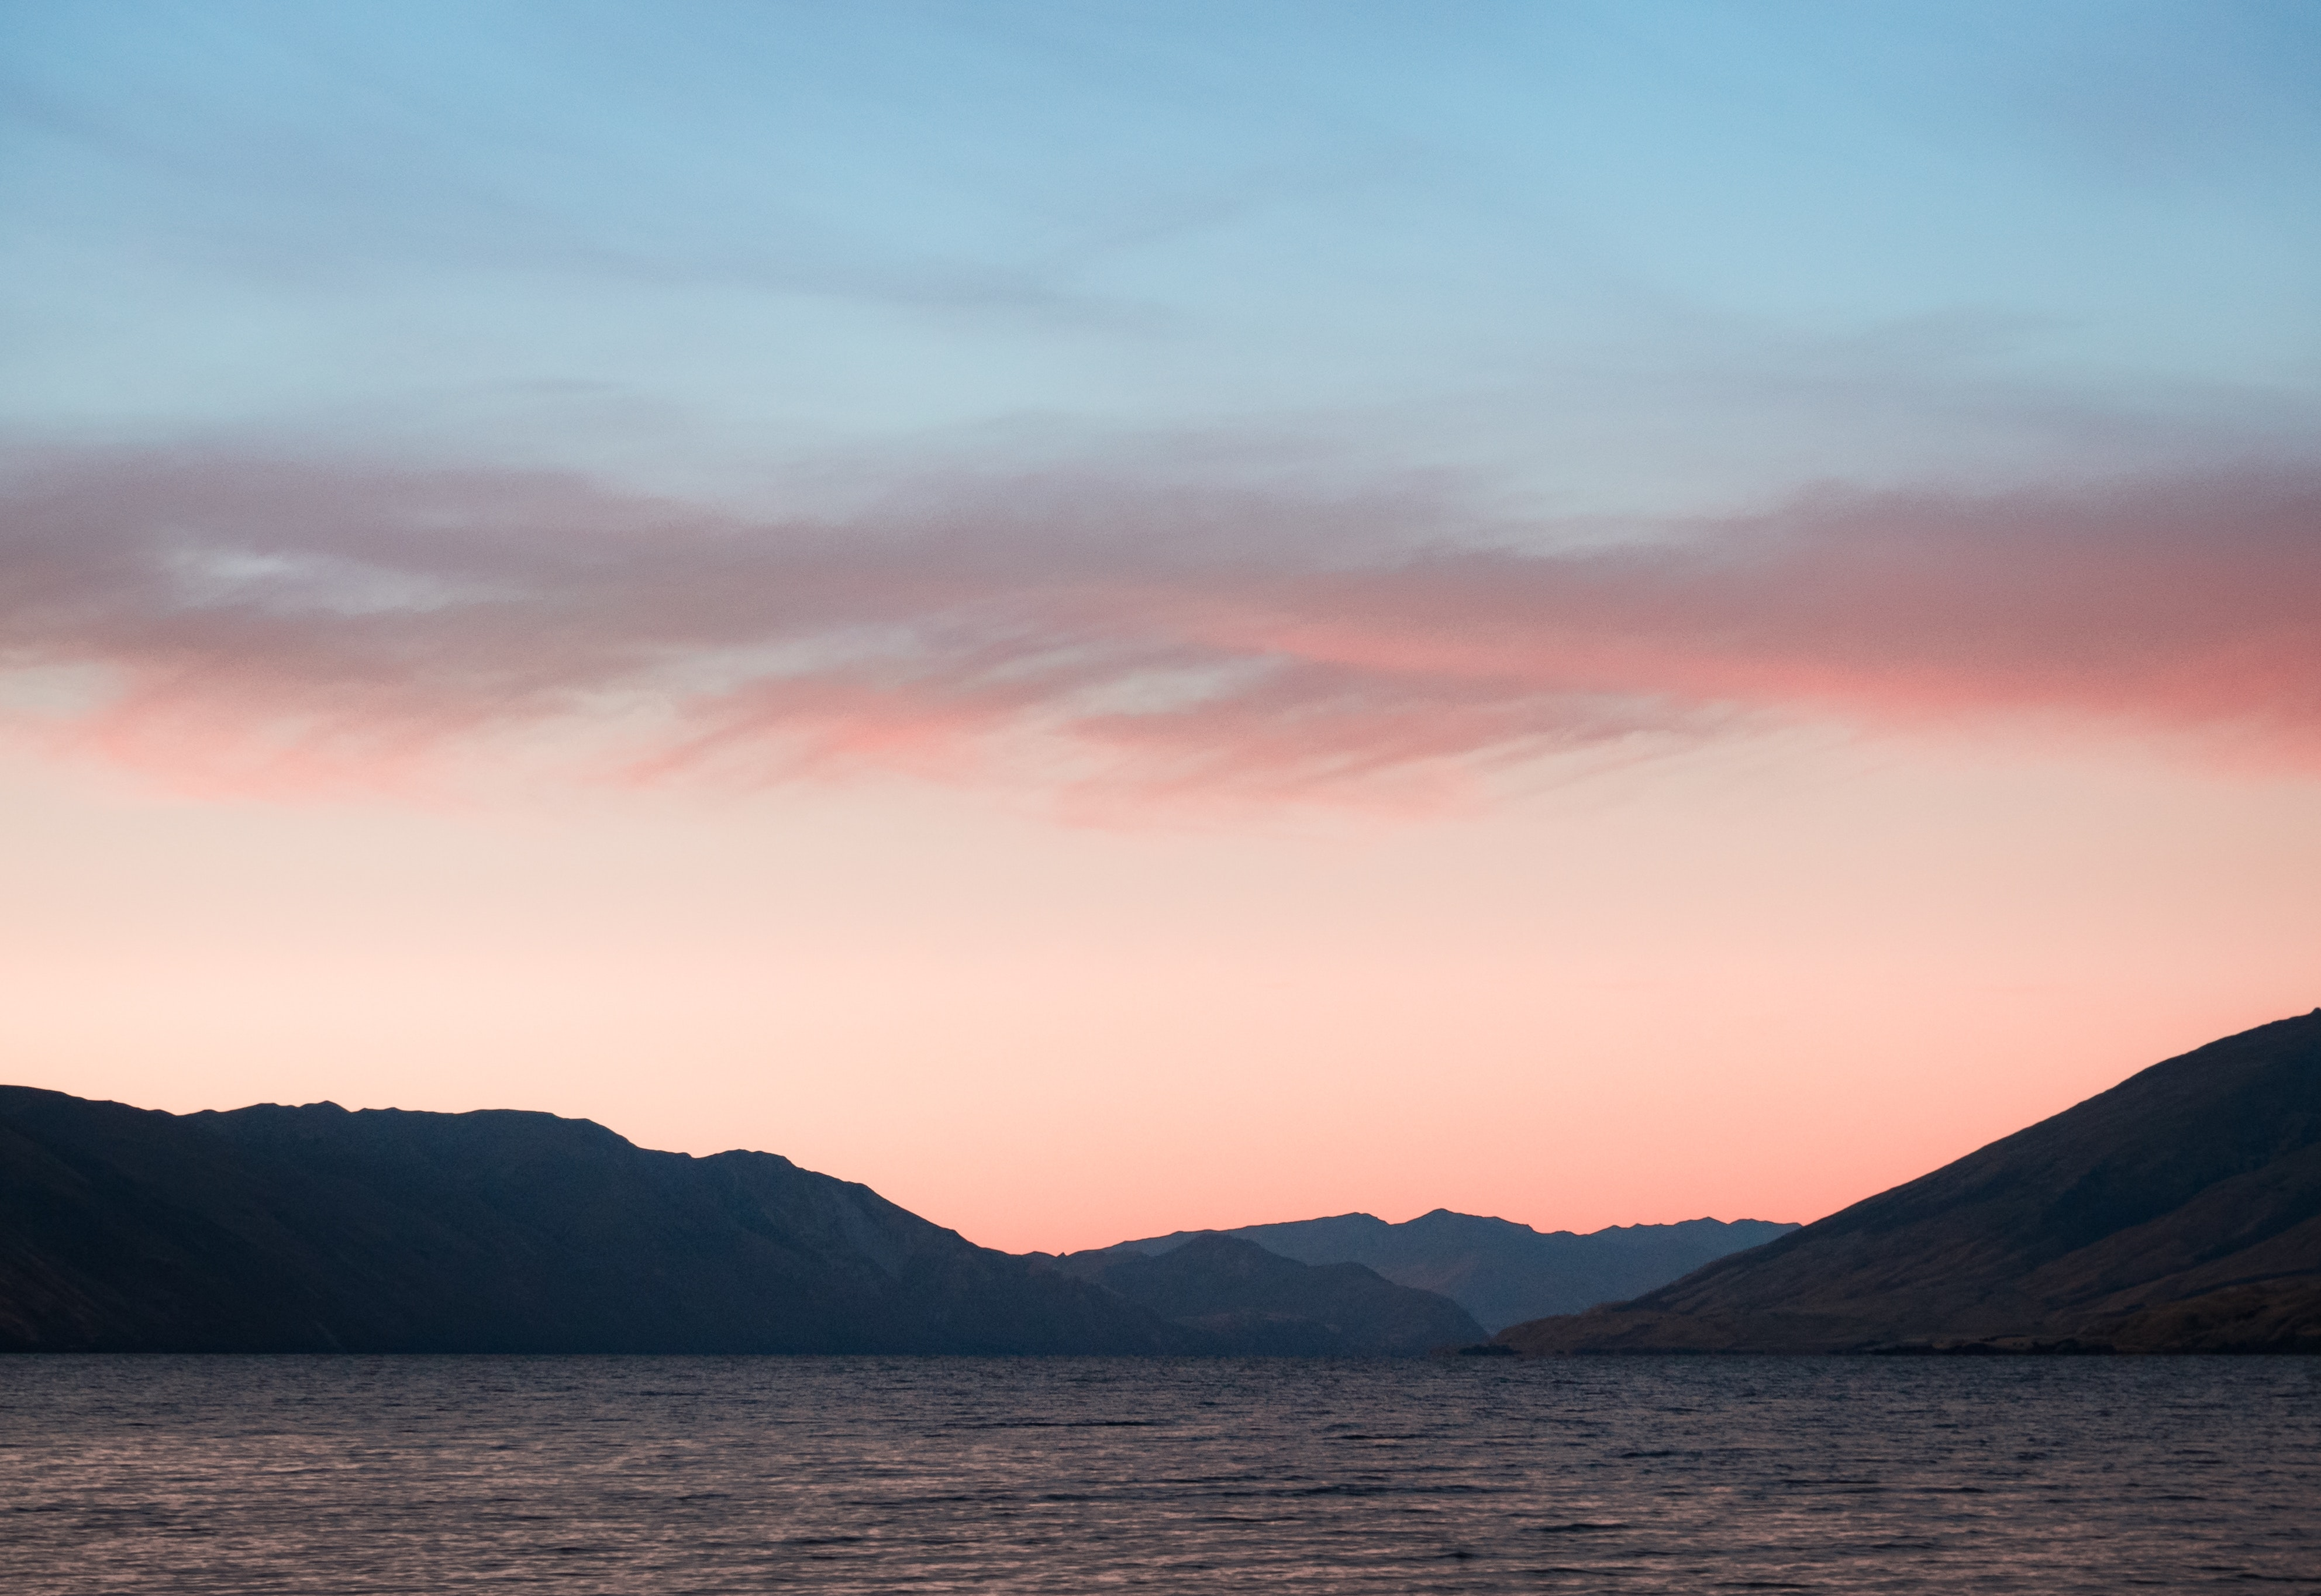 Body of Water With Mountains on Side, Background, Nature, Sunset, Sky, HQ Photo